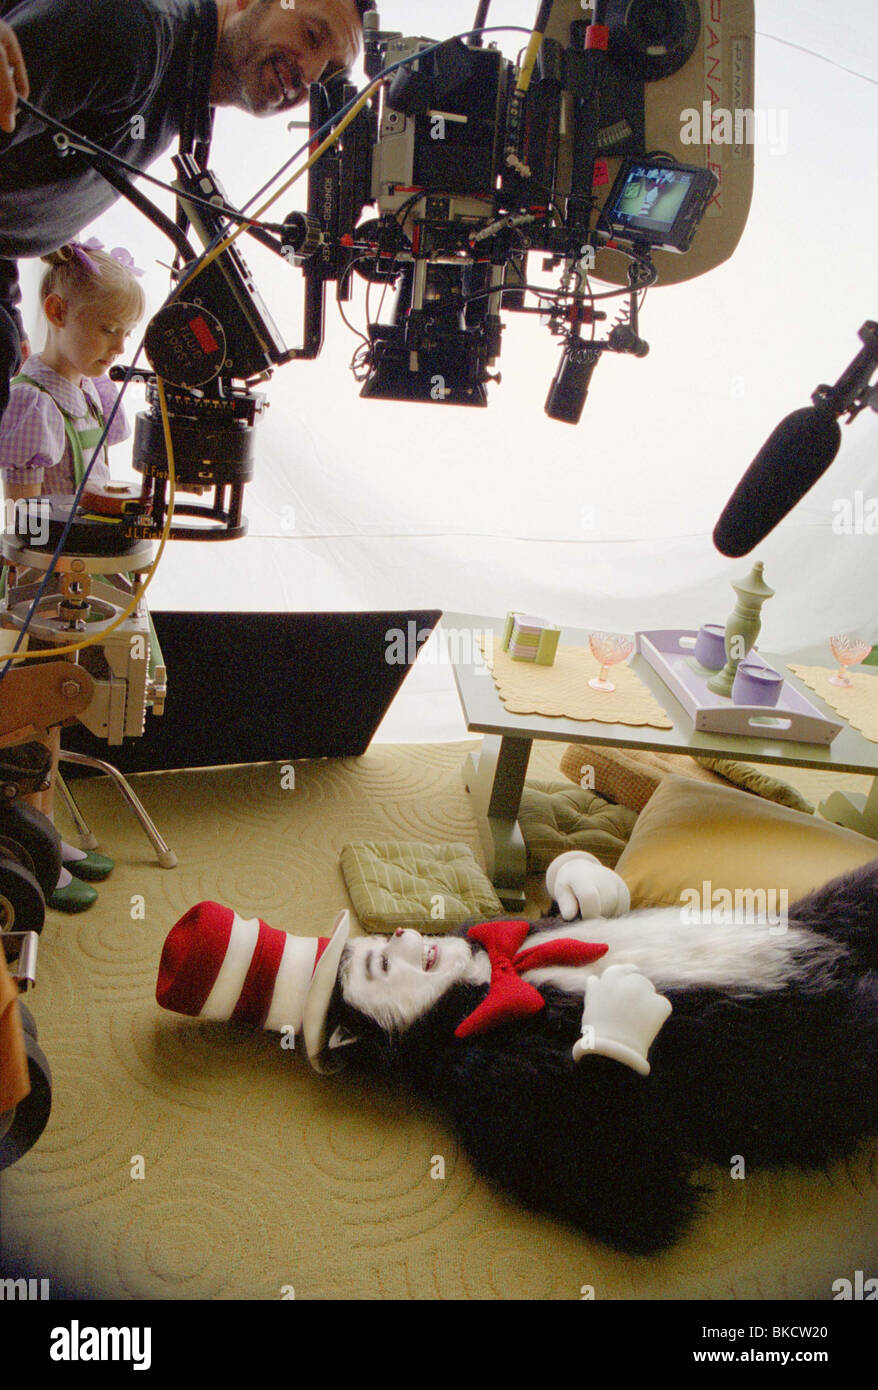 bc52c76c FILMING PRODUCTION (ALT) LOCATION (ALT) BEHIND THE SCENES (ALT) ON SET  (ALT) O/S 'DR SEUSS' THE CAT IN THE HAT' (2003) WITH